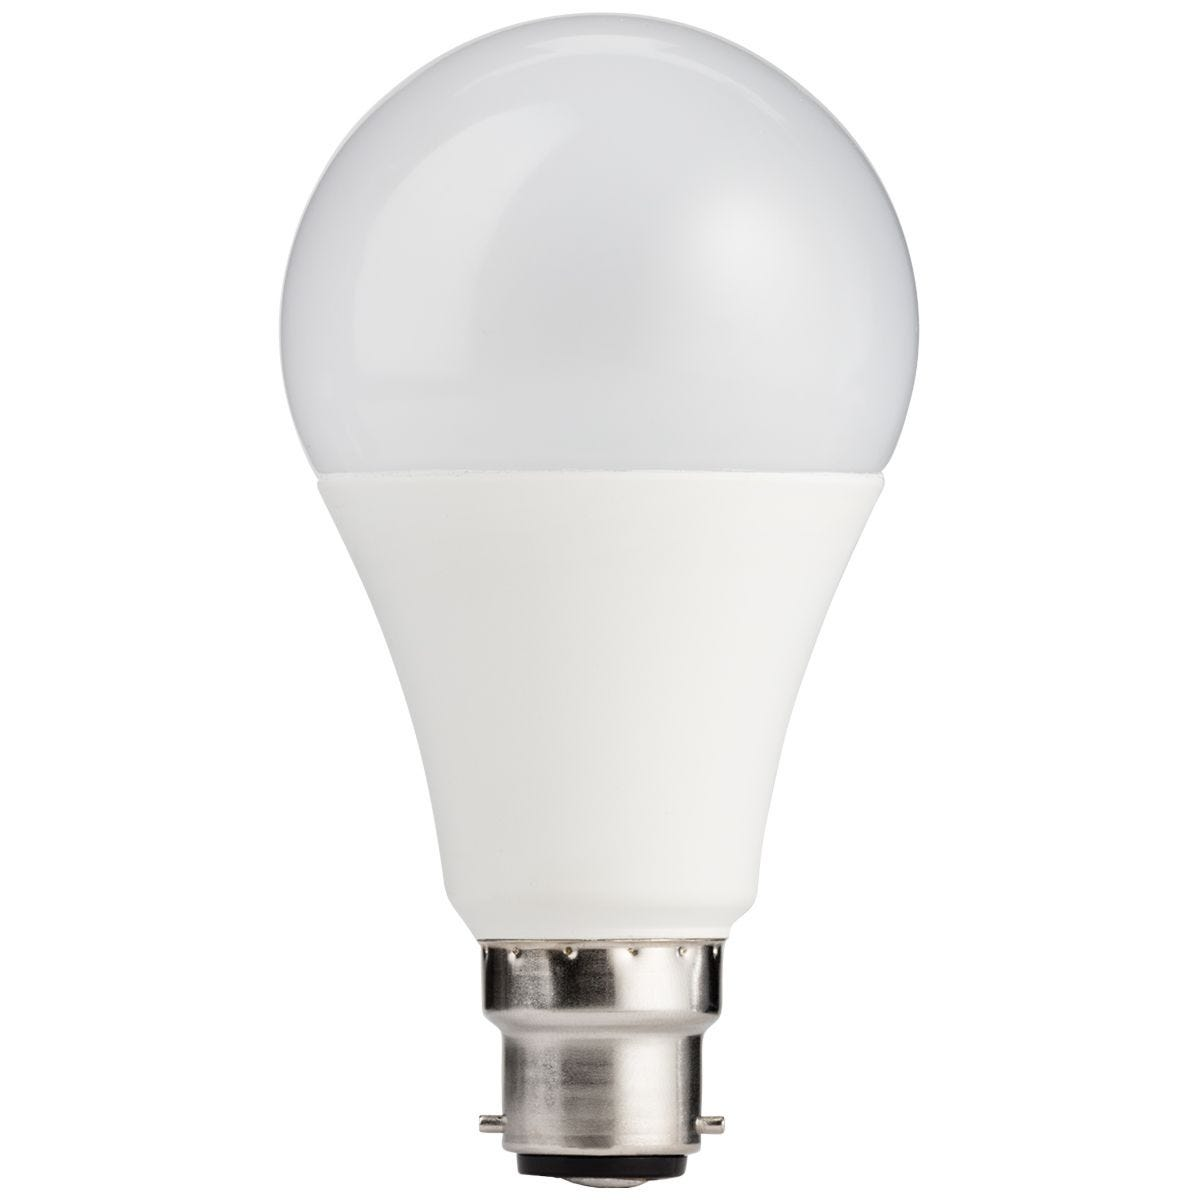 TCP LED Classic 1521lm B22 Costed Dimmable 6500k 100W Bulb - Daylight